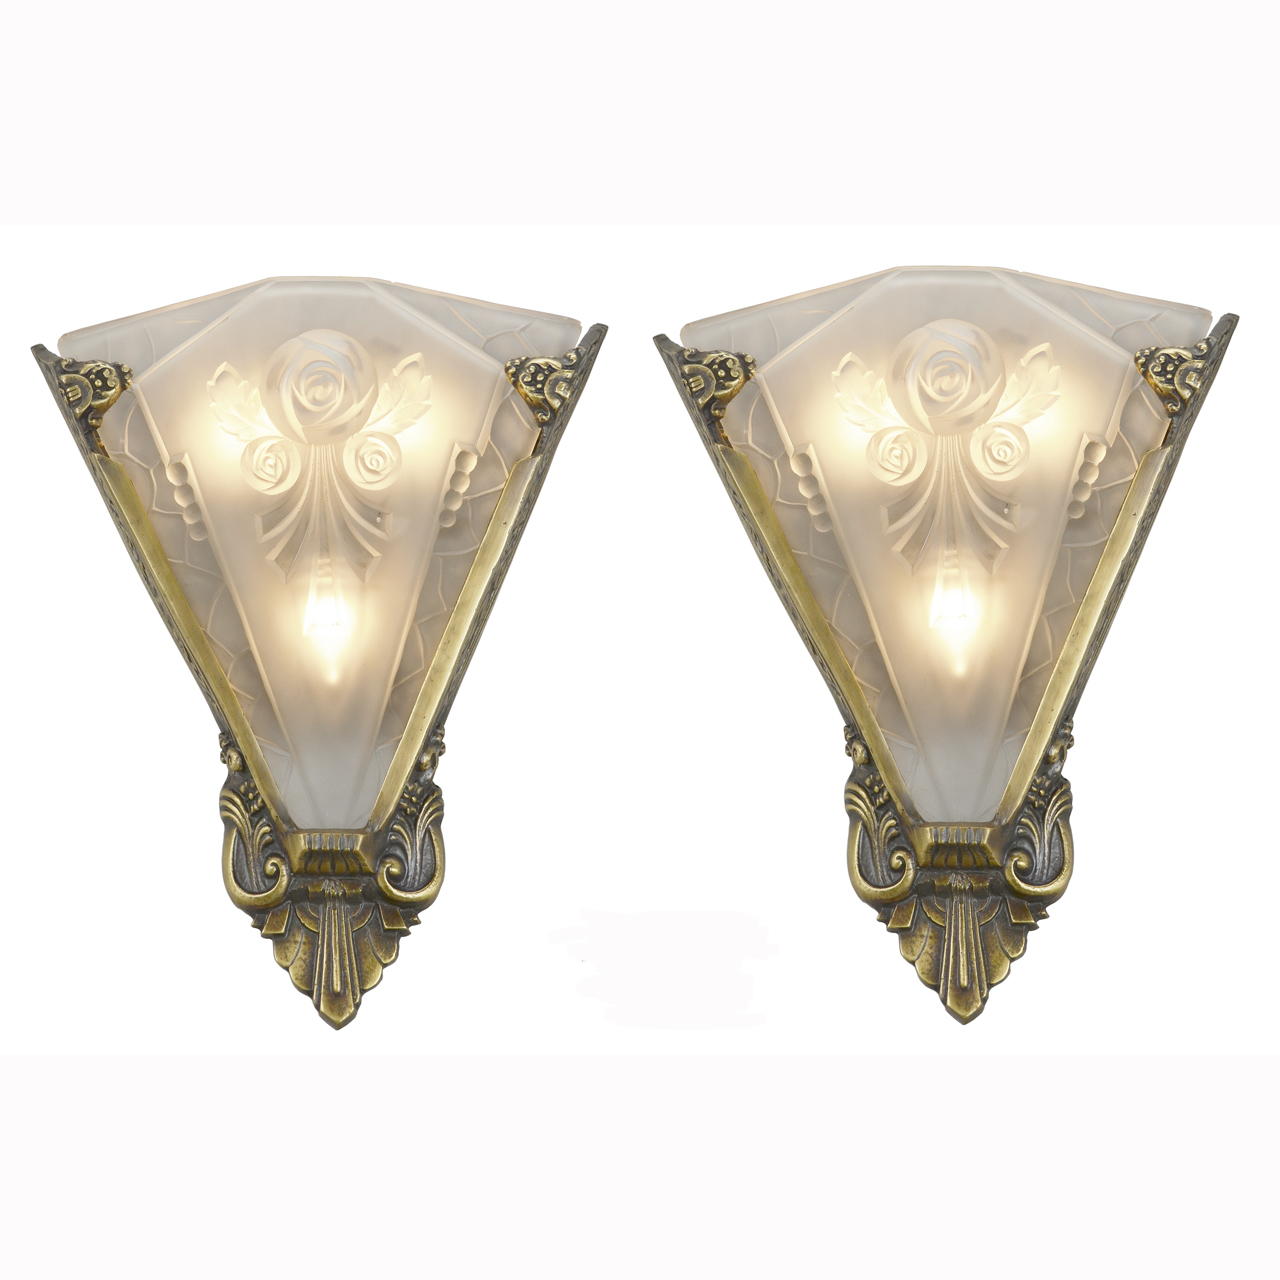 Wall Lamps For Sale Pair Of Large Wall Sconces Lighting With Antique French